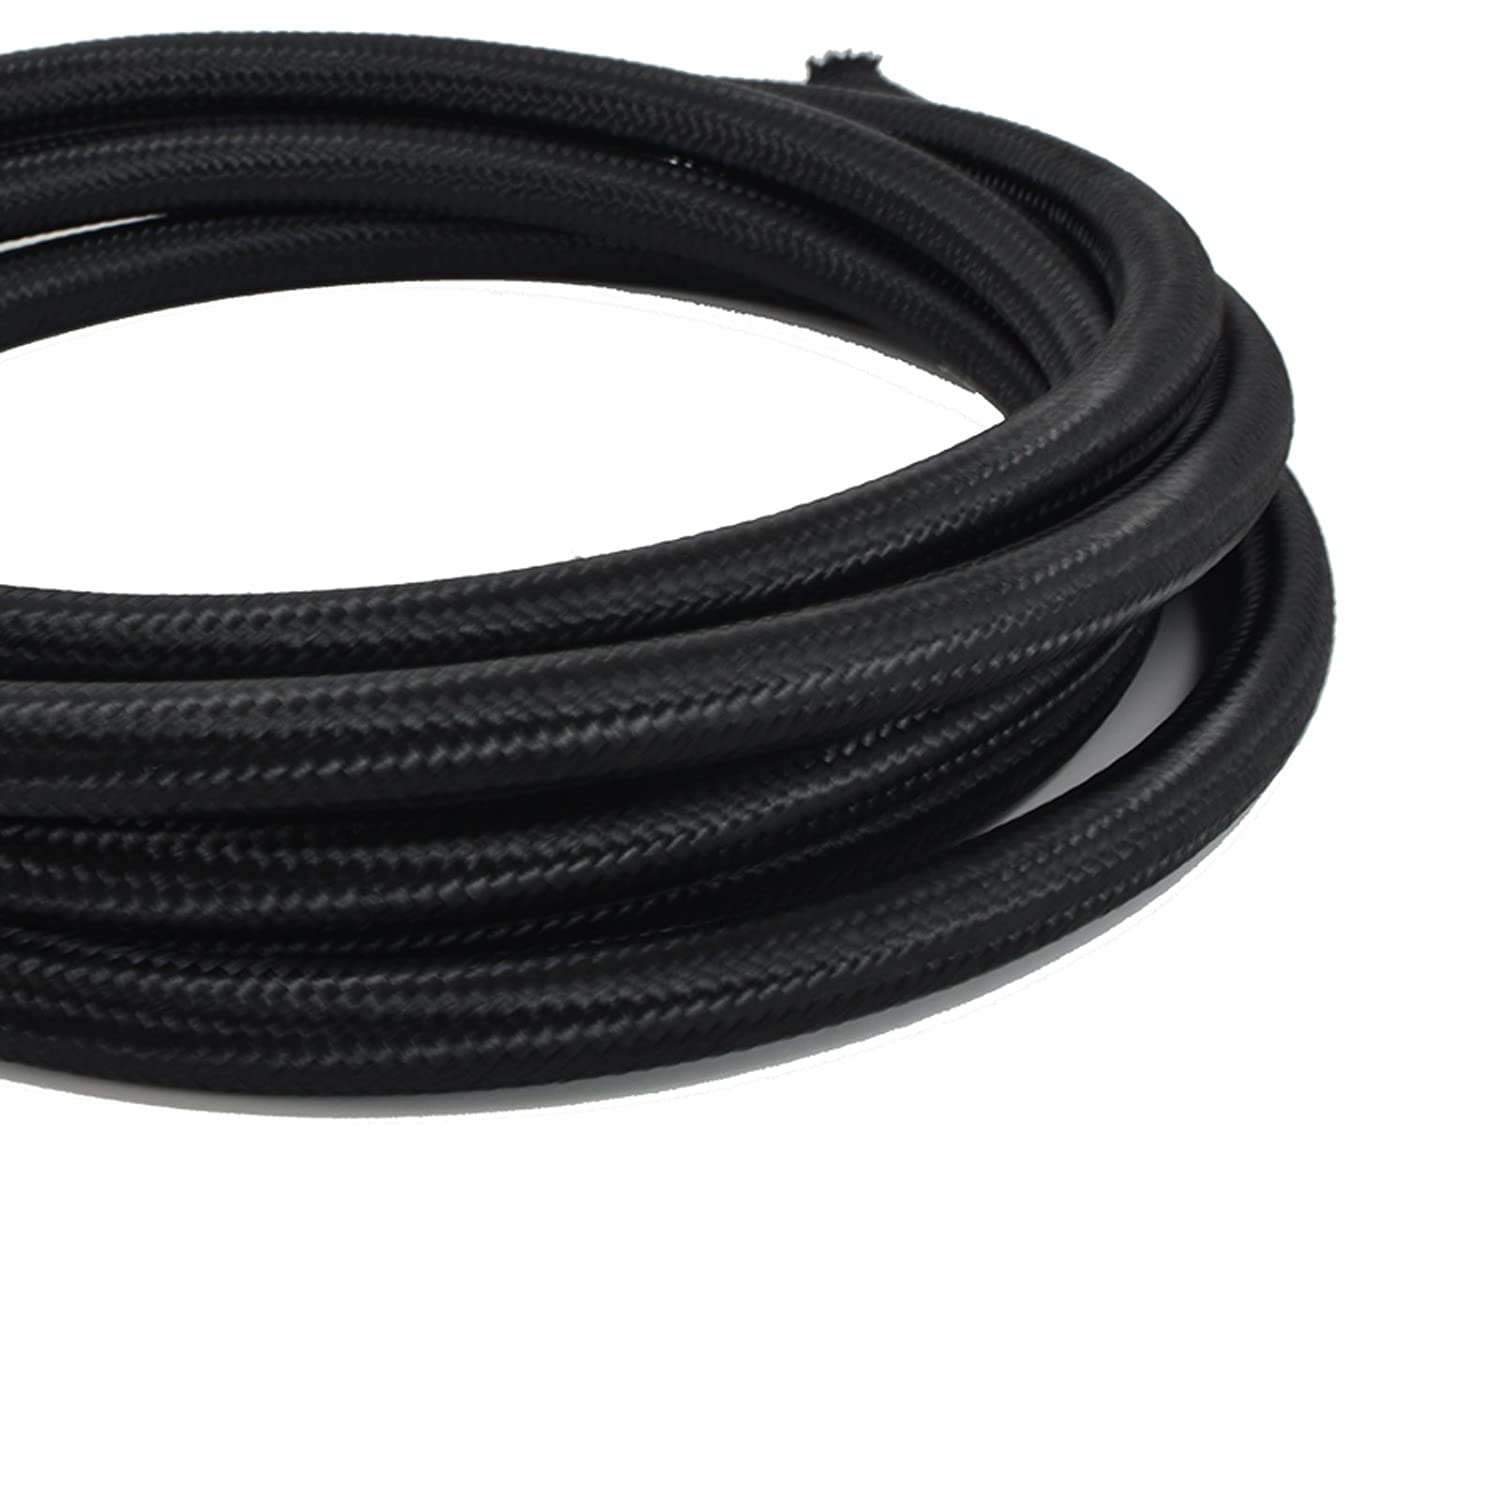 Oil 12AN Nylon Braided Hose for Fuel Coolant and Air 20 Feet Kraken Automotive